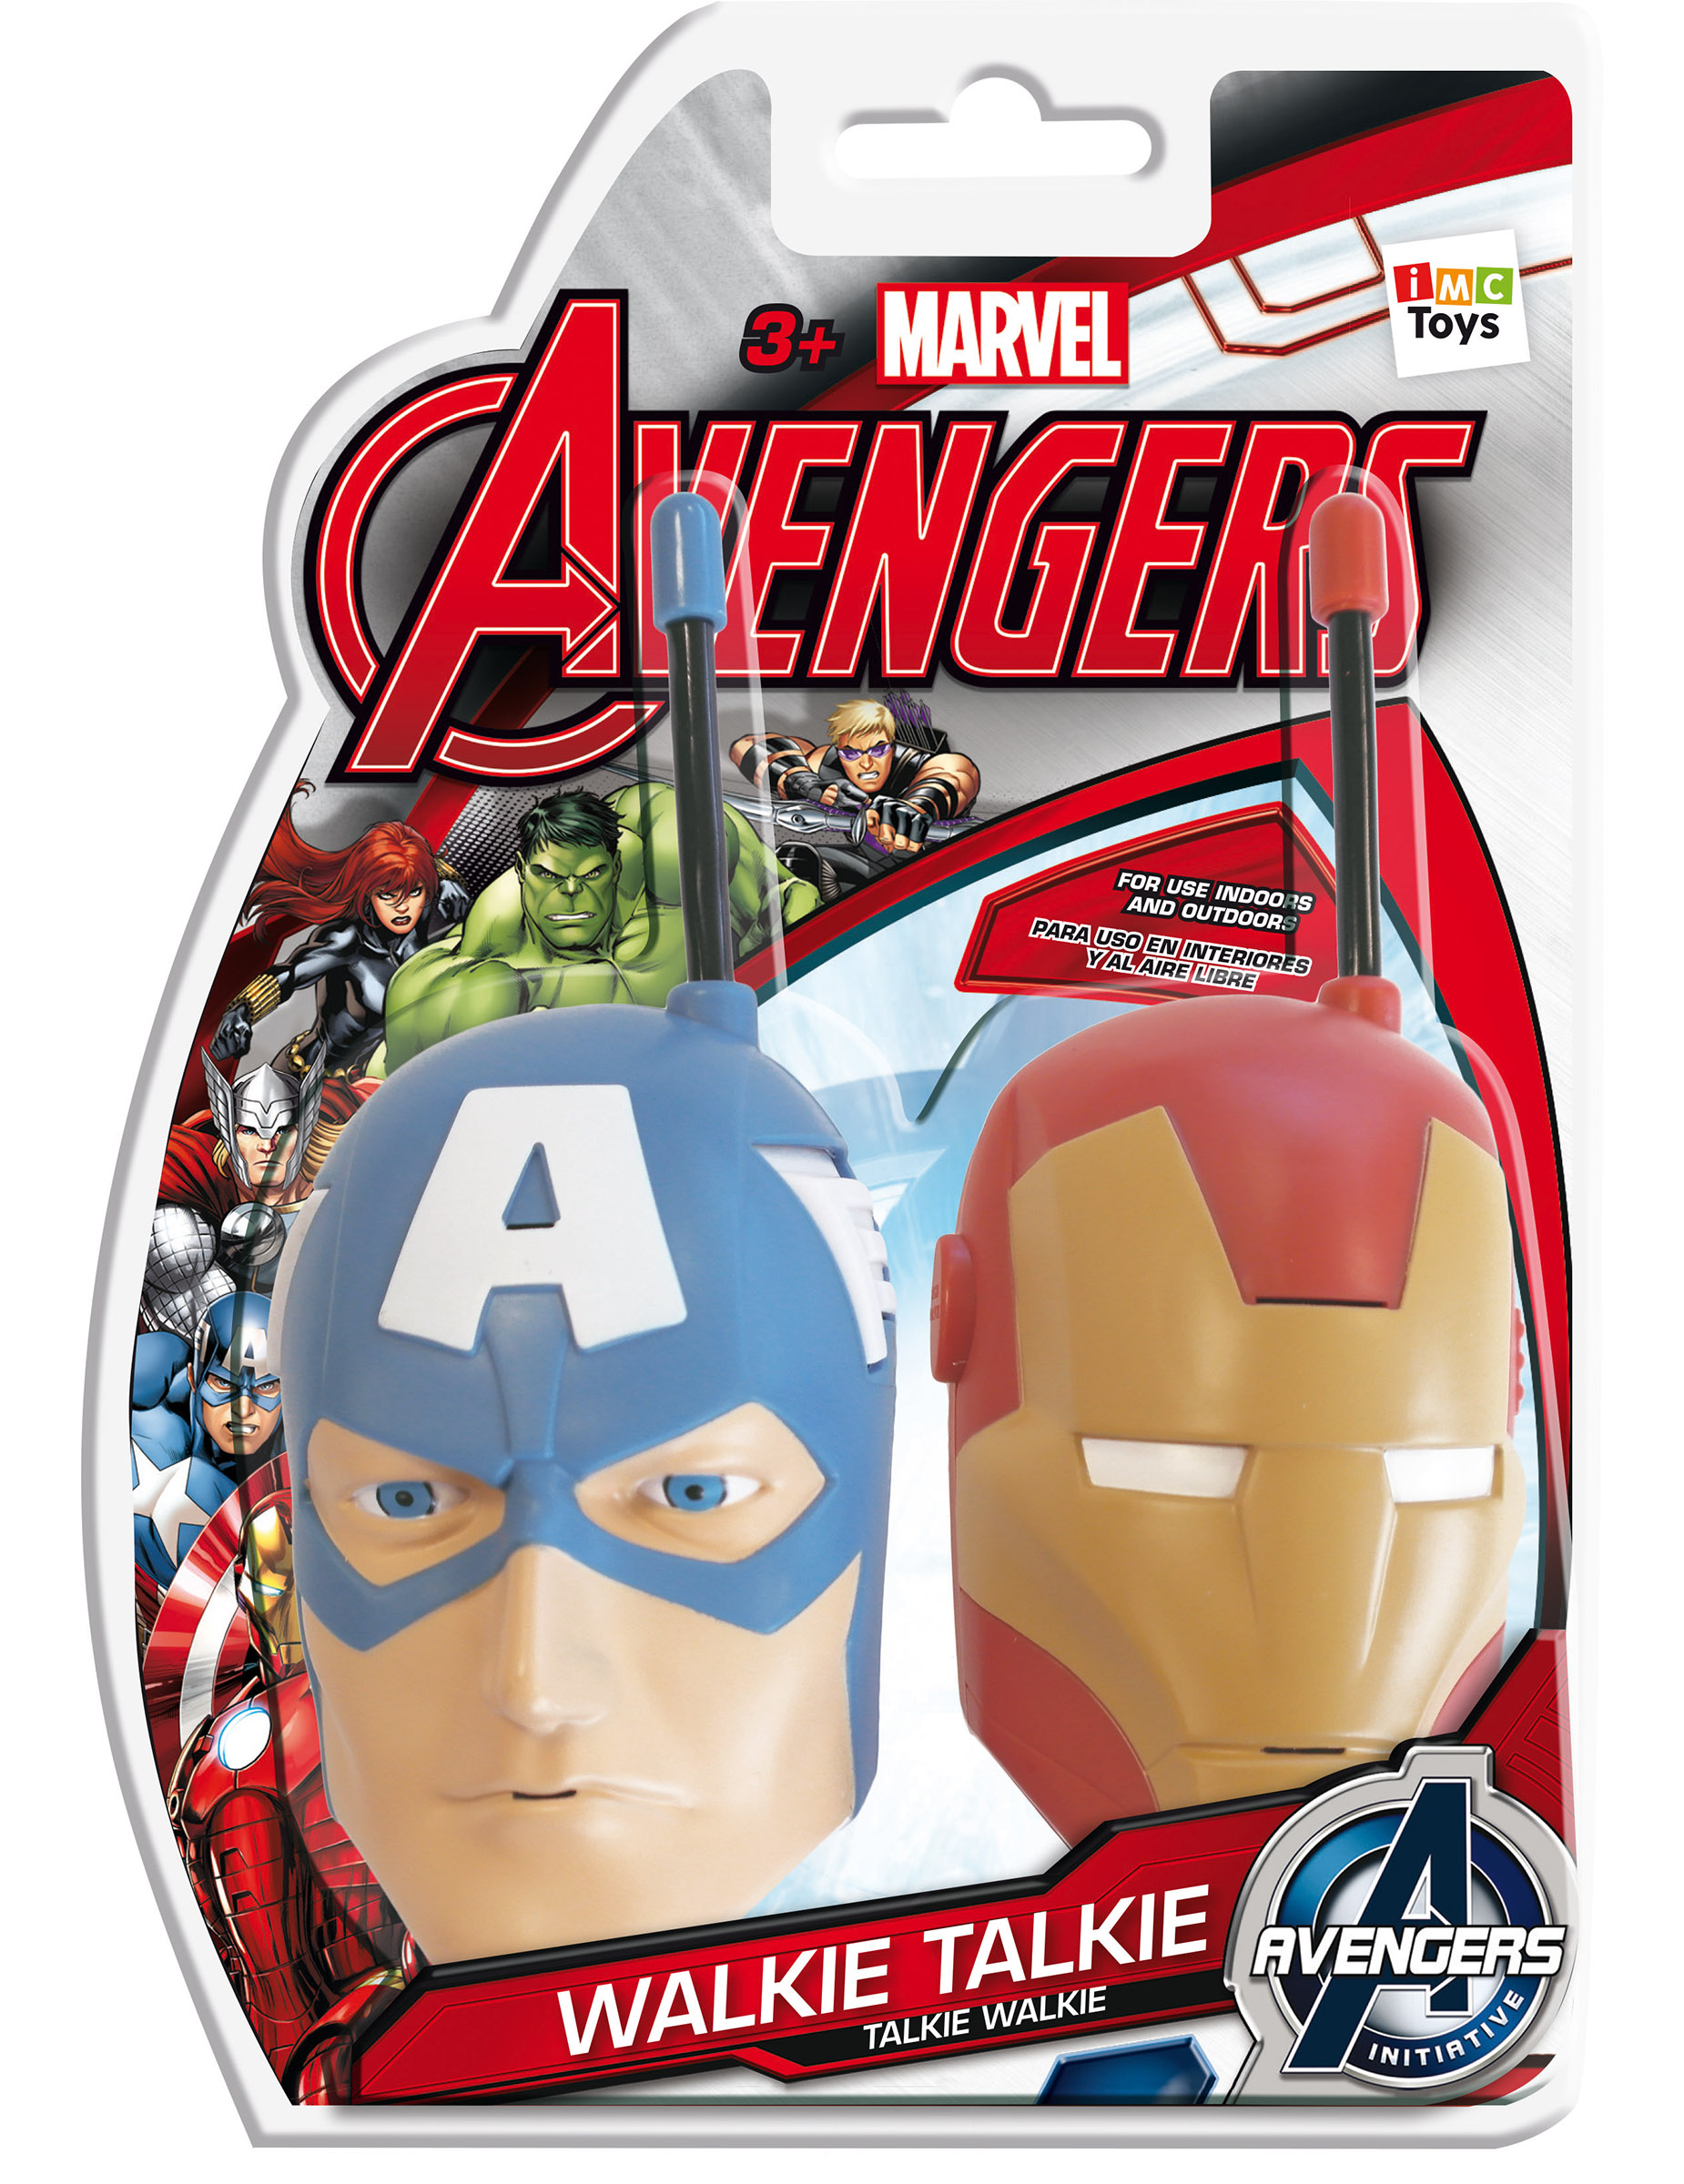 2 talkie walkie avengers achat de accessoires sur. Black Bedroom Furniture Sets. Home Design Ideas